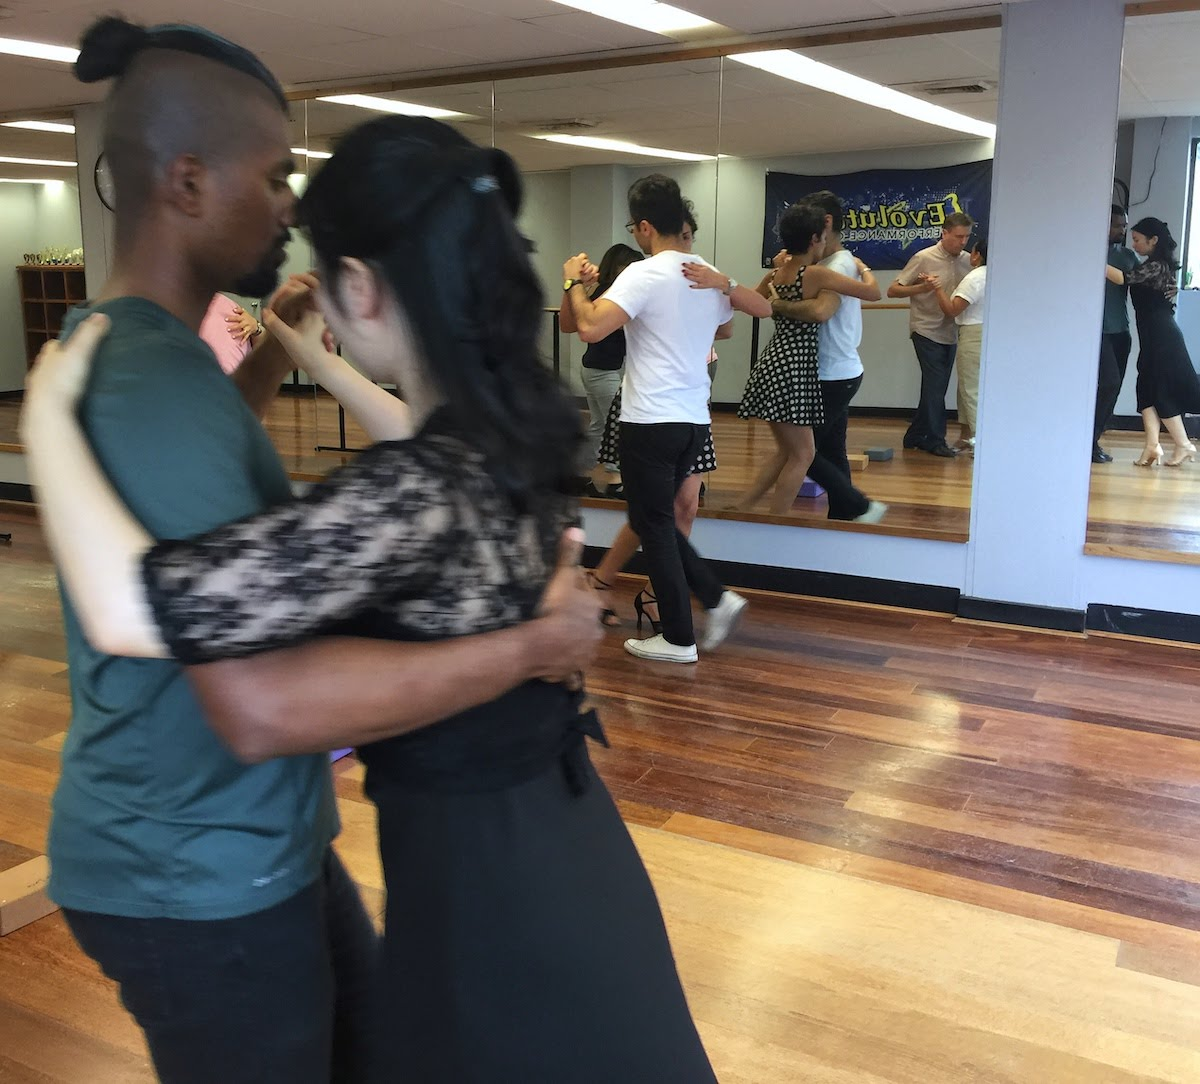 tango workshops sydney north Glebe Redfern Crows Nest